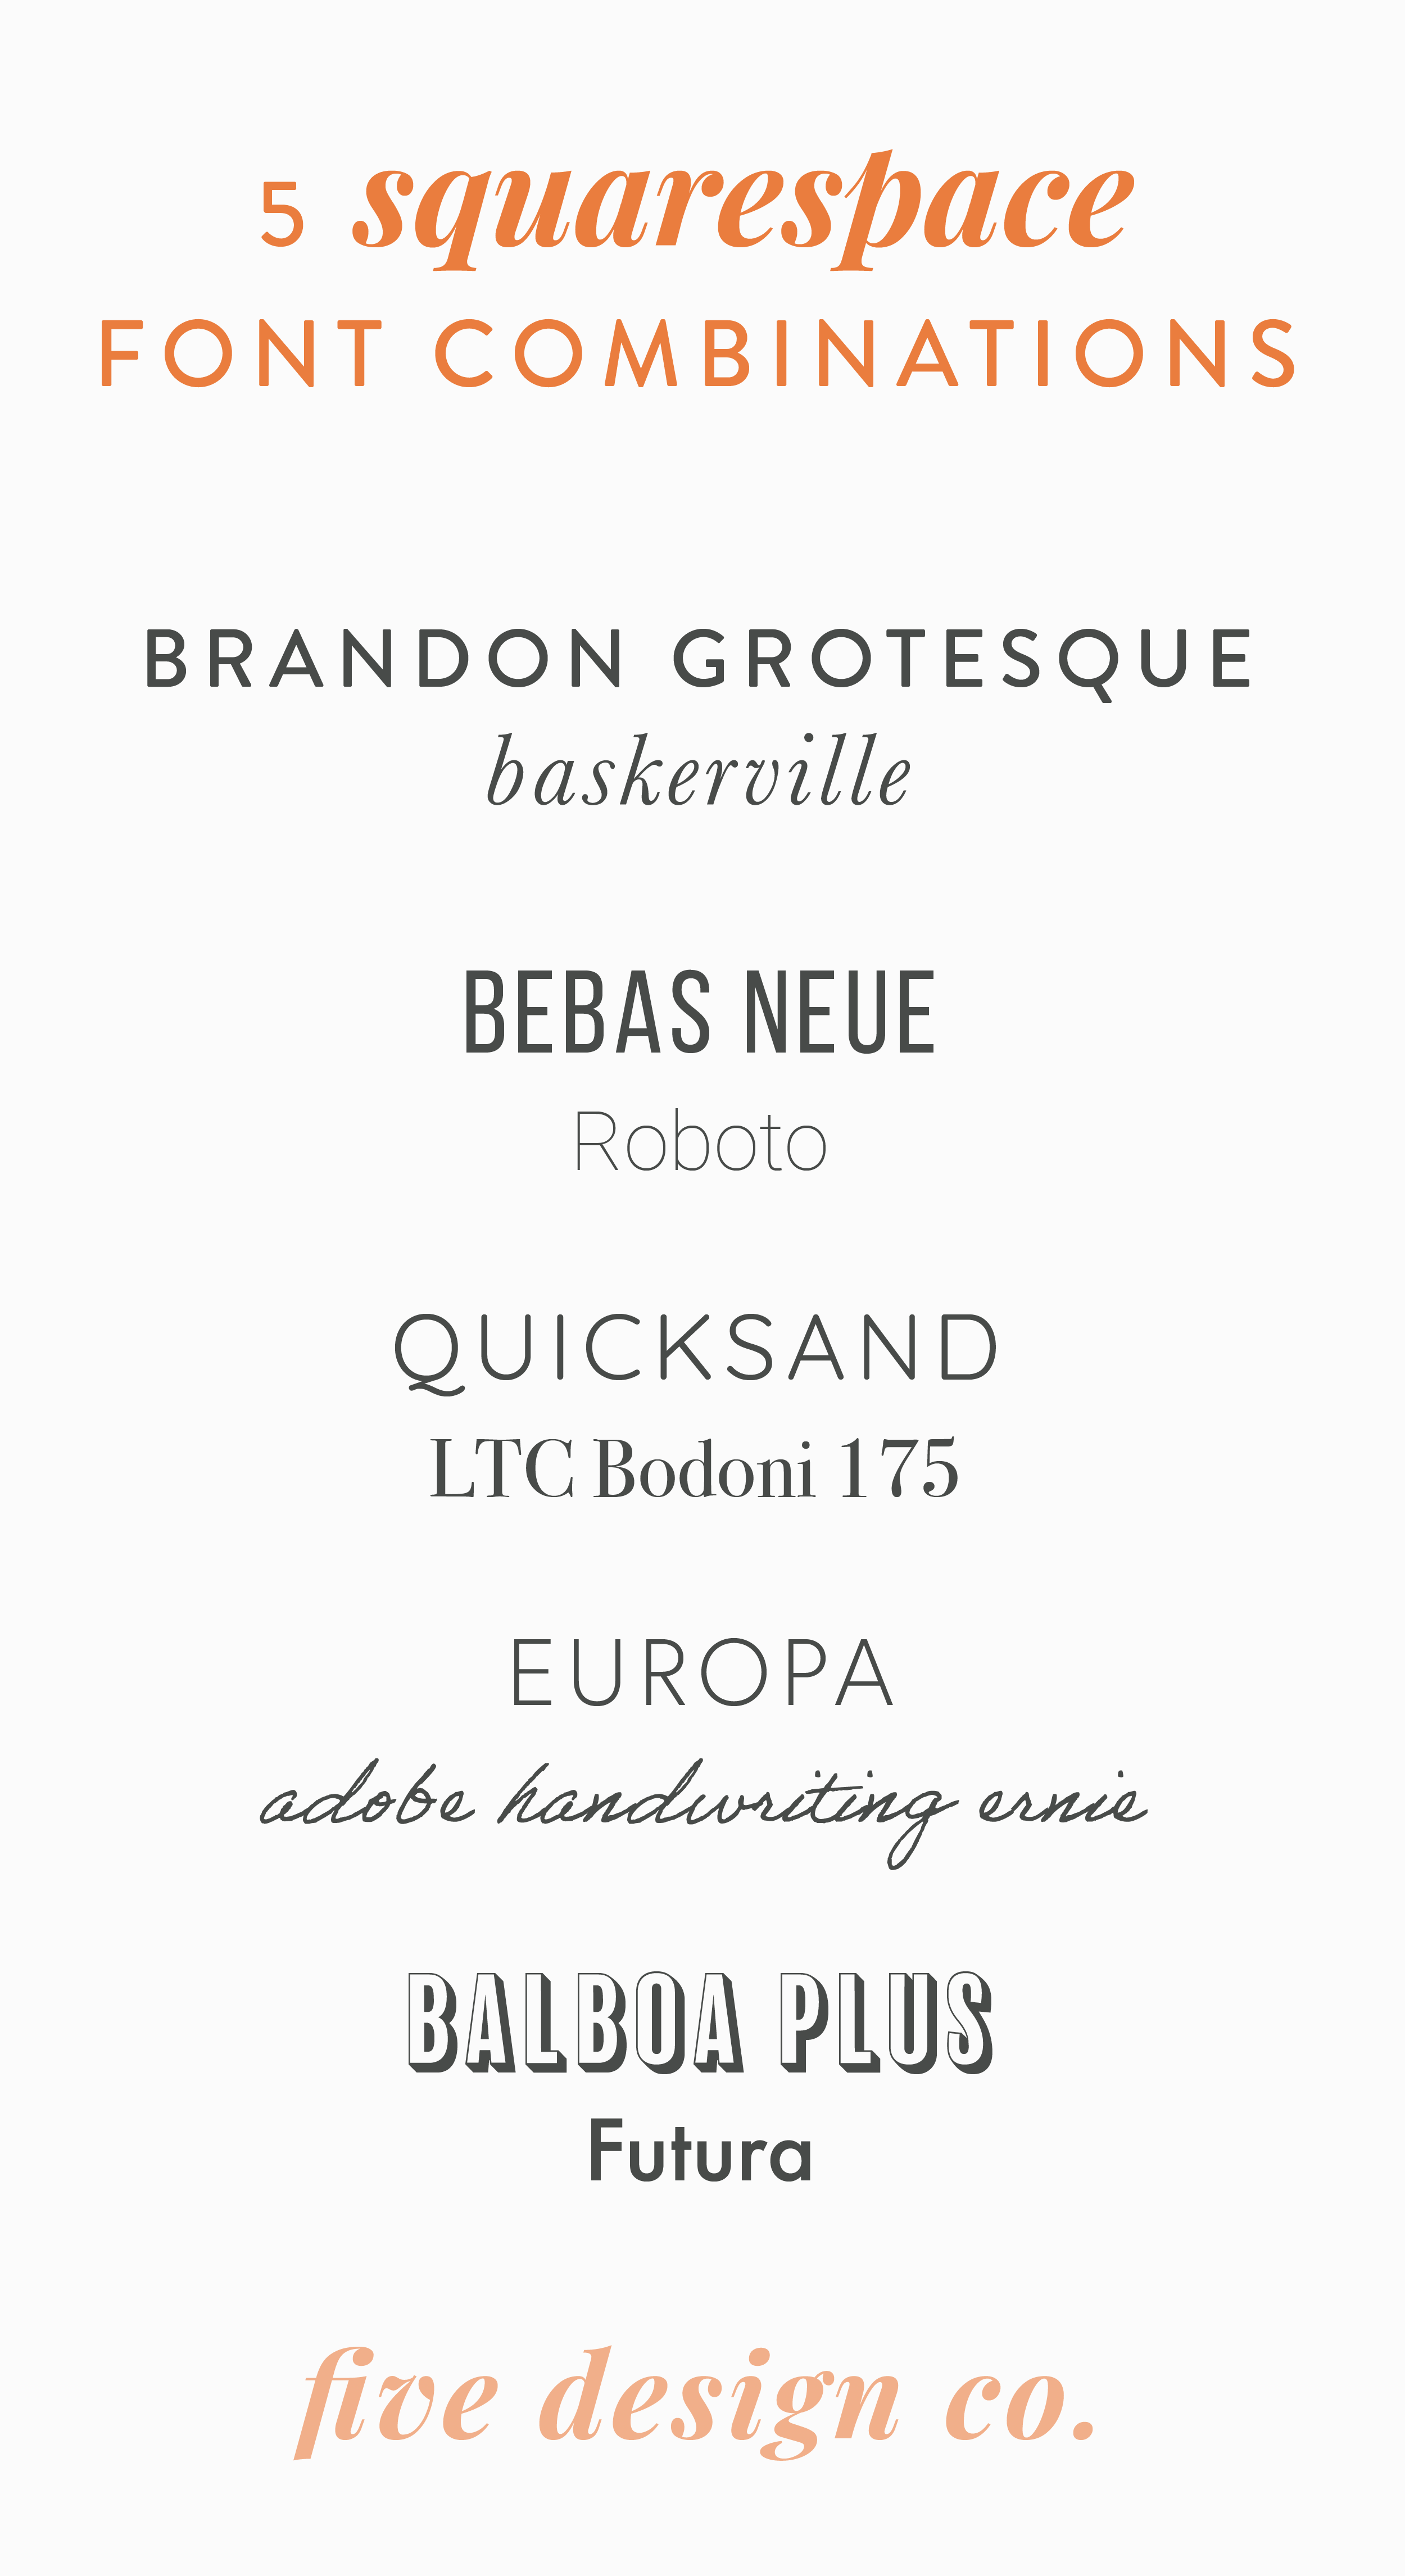 Best Squarespace font combinations // How to Create a Brand Style Guide for Your Business // Five Design Co.